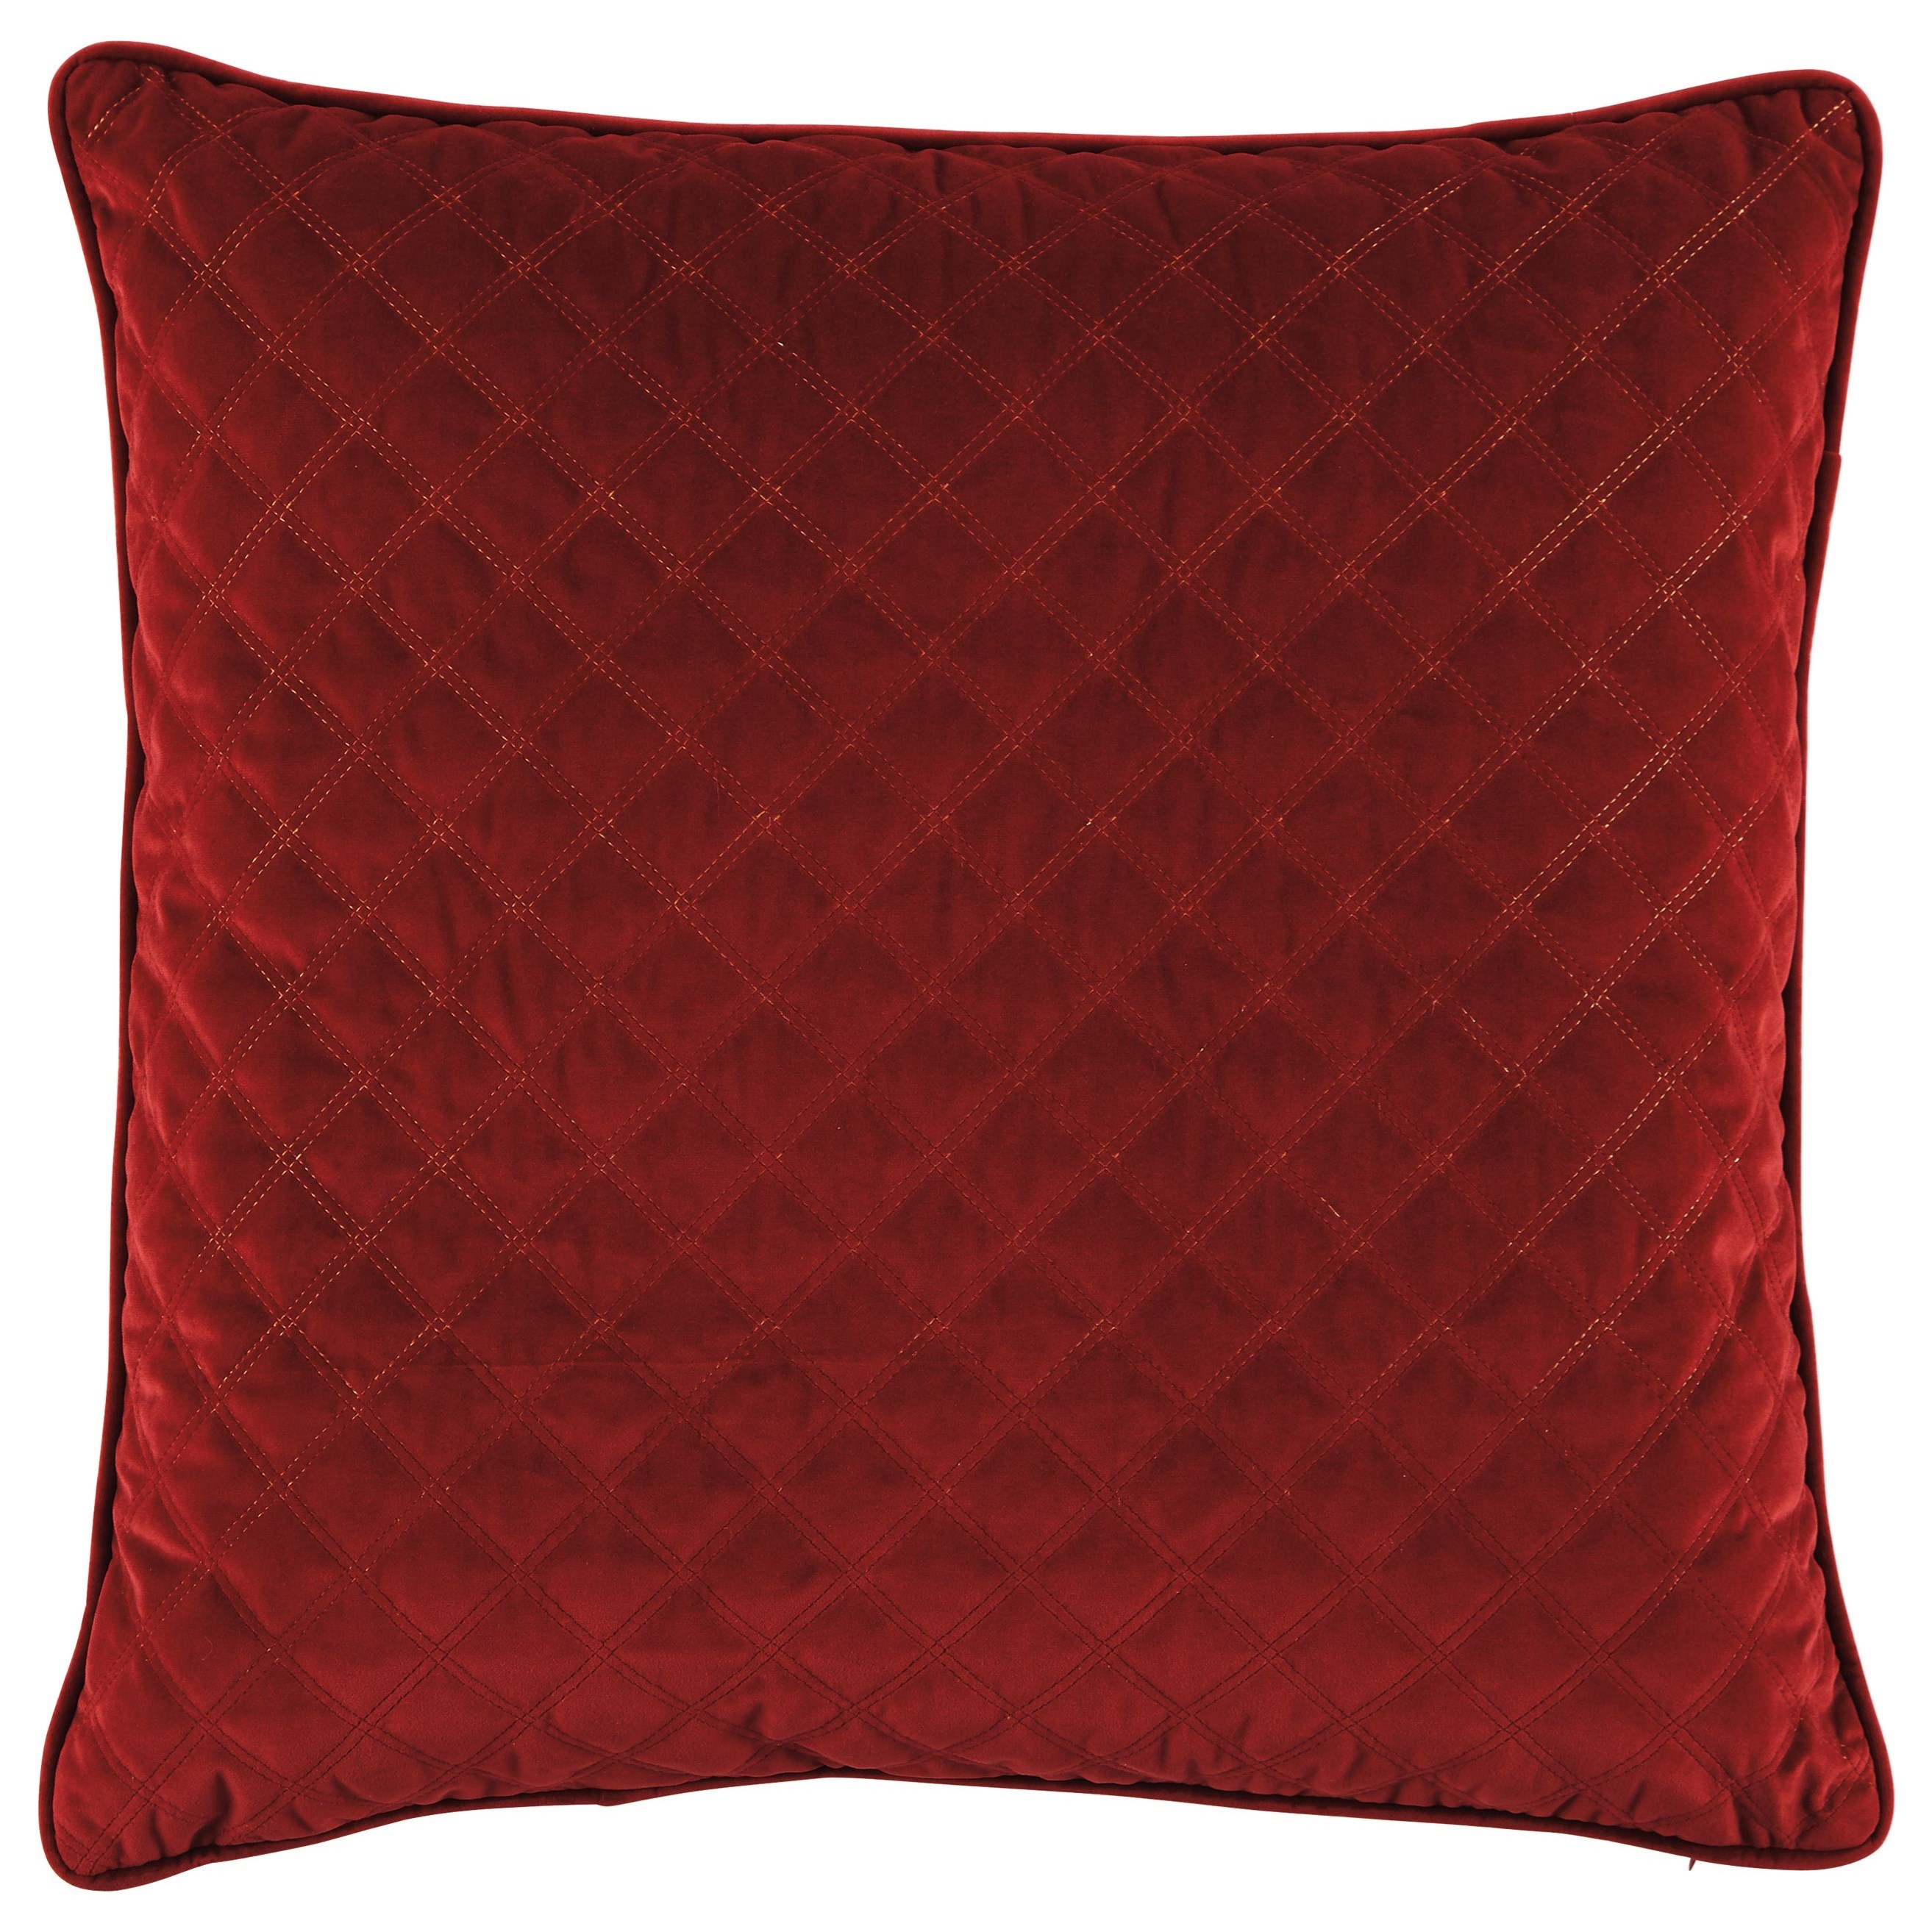 Trendz Pillows Piercetown Red Pillow - Item Number: A1000402P